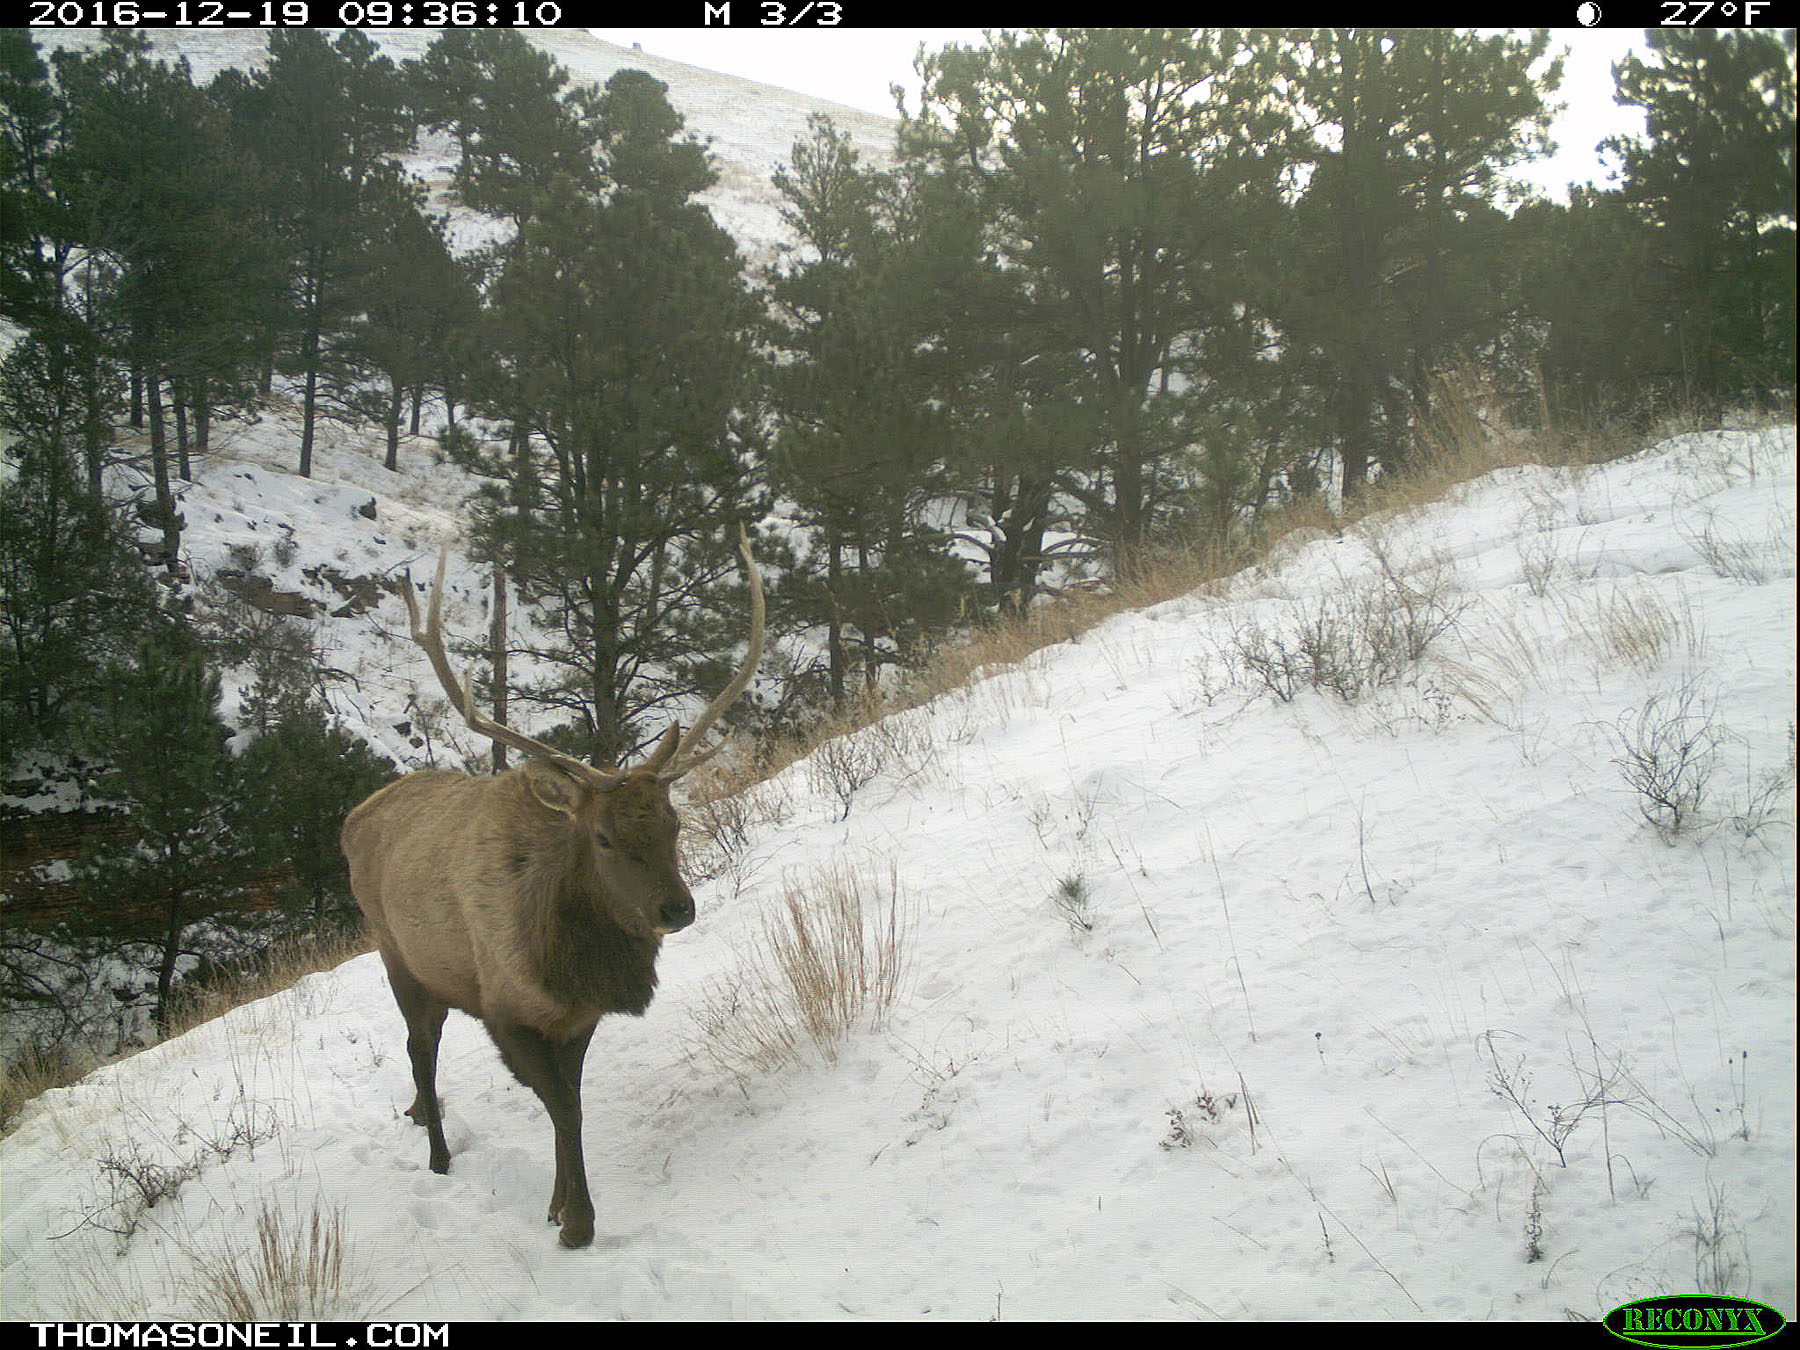 An elk on trailcam in Wind Cave National Park, SD, December 2016.